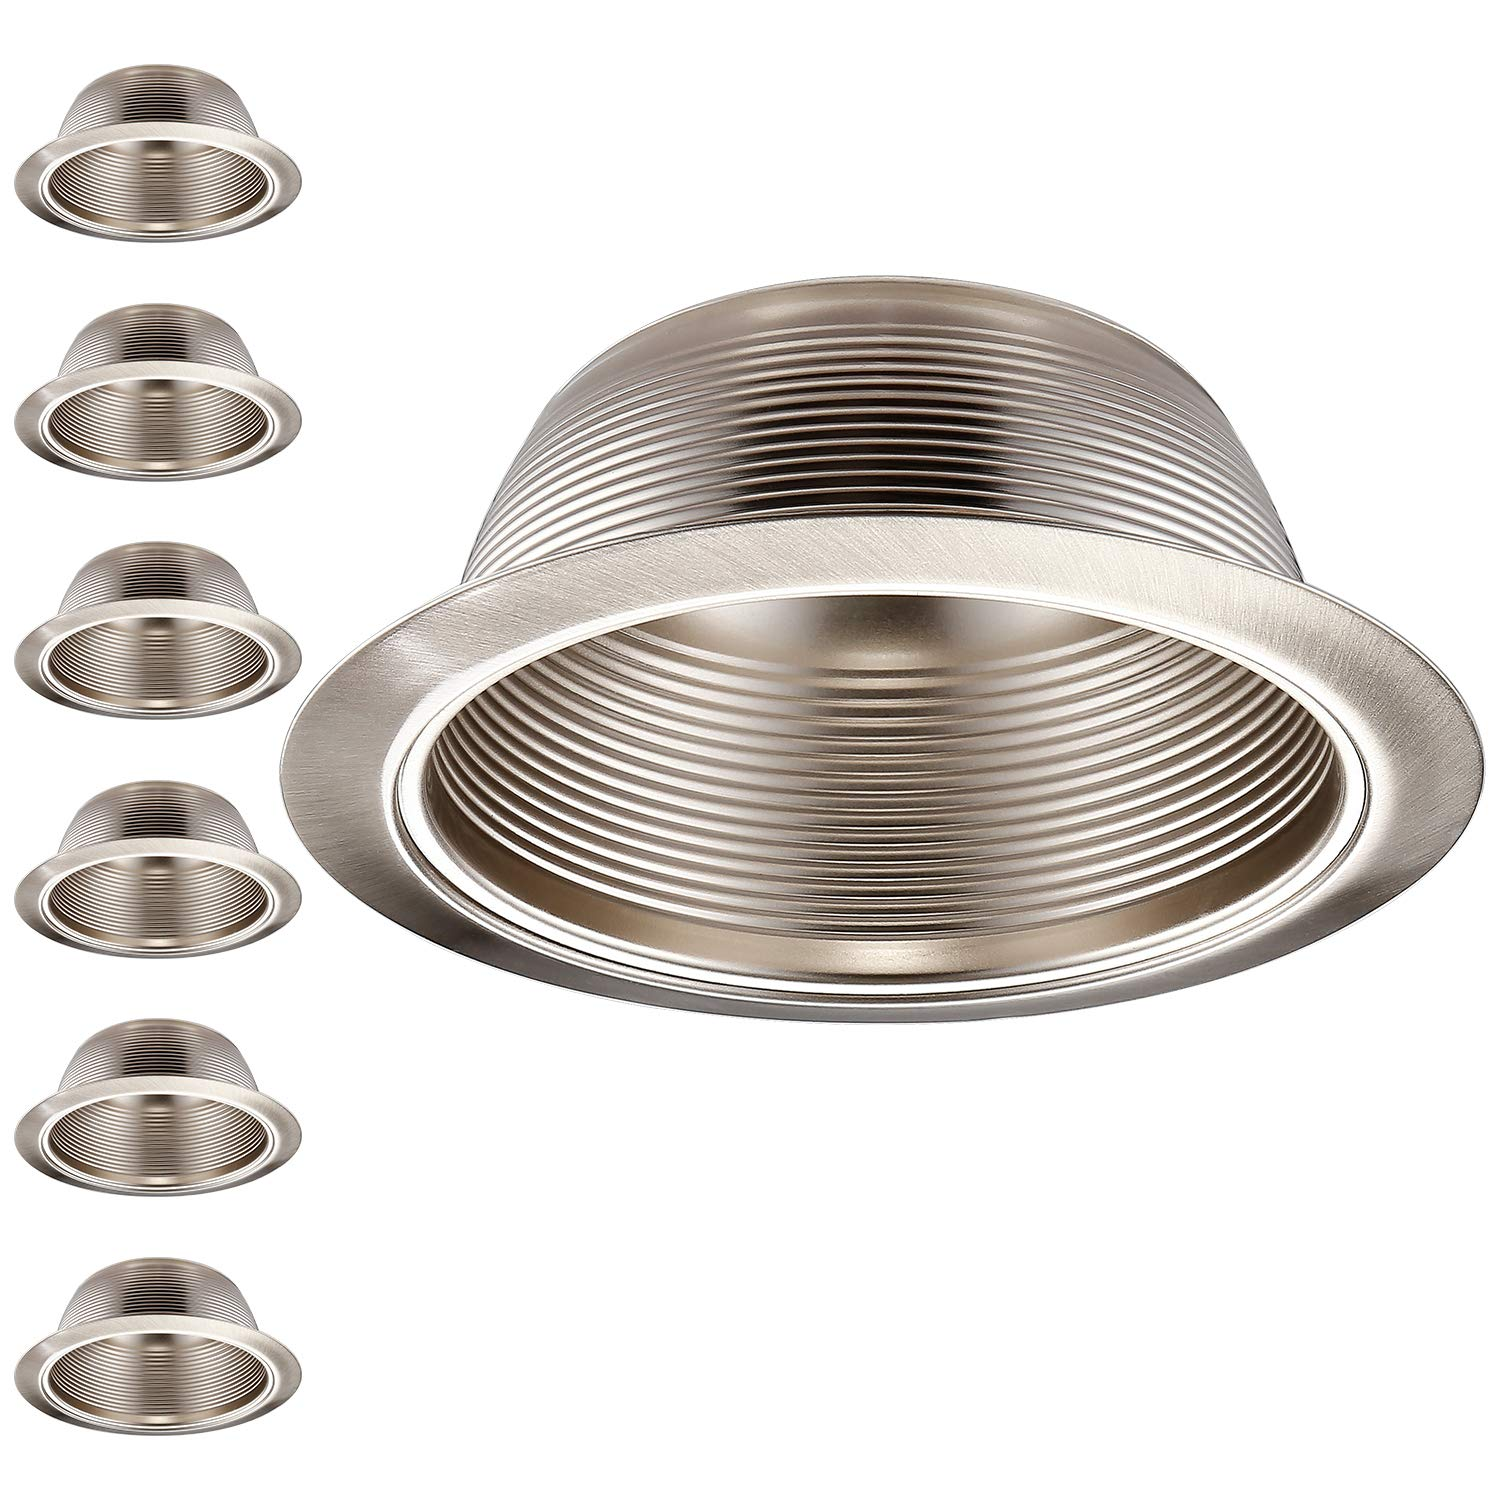 TORCHSTAR 6 Pack 6 Inch Recessed Can Light Trim with Satin Nickel Metal Step Baffle, Detachable Iron Ring Included, Fit Halo and Juno Remodel Recessed Housing by TORCHSTAR